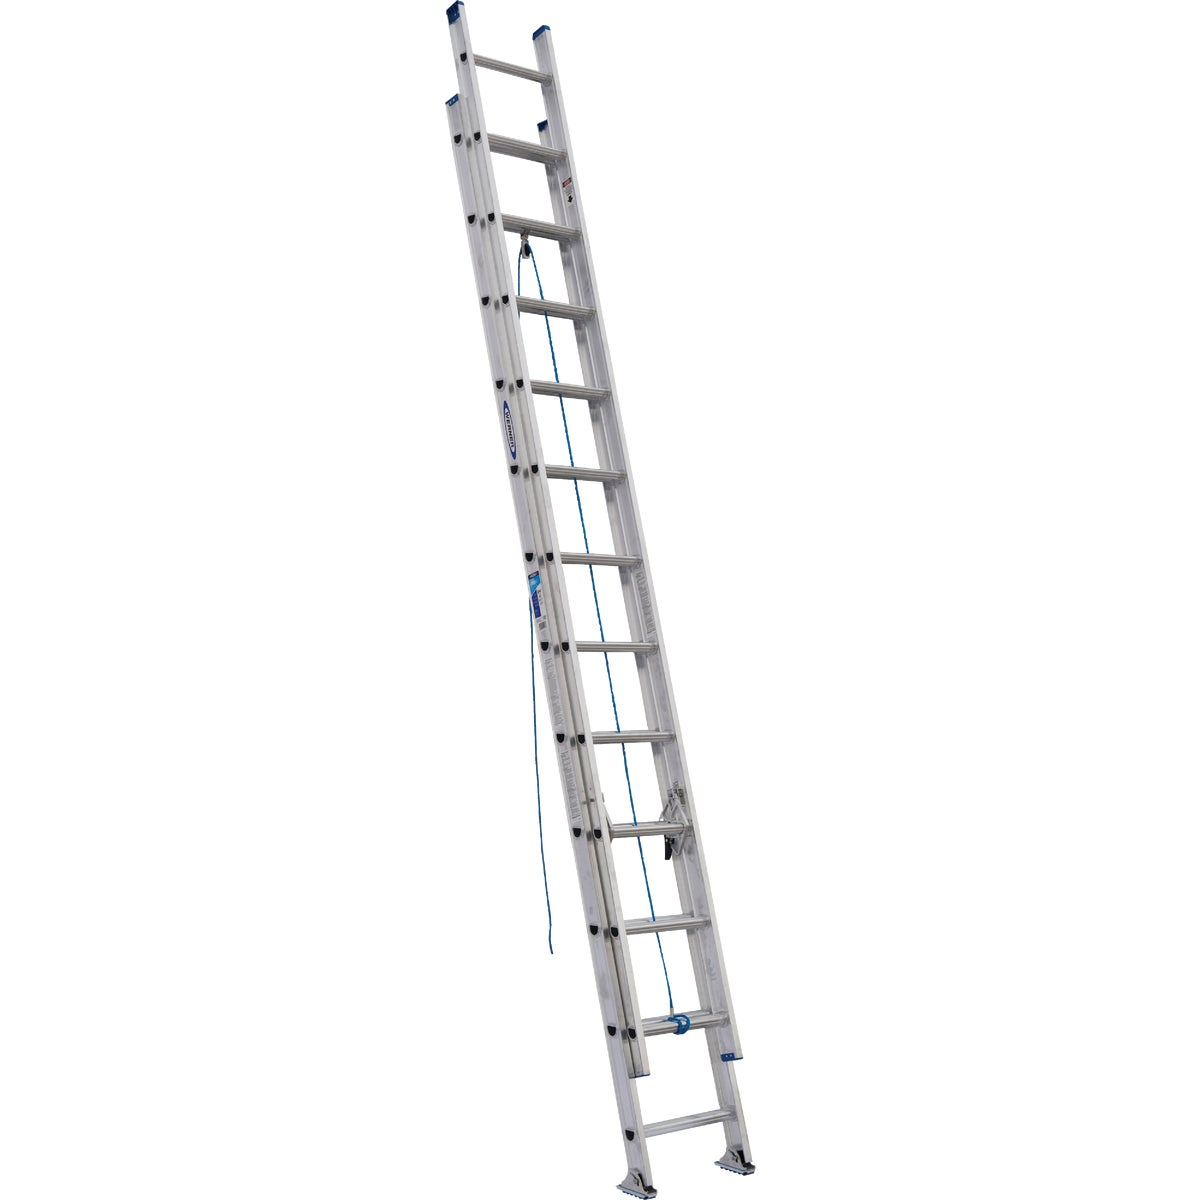 T-1 24' ALUM EXT LADDER - D1324-2 by Werner Ladder